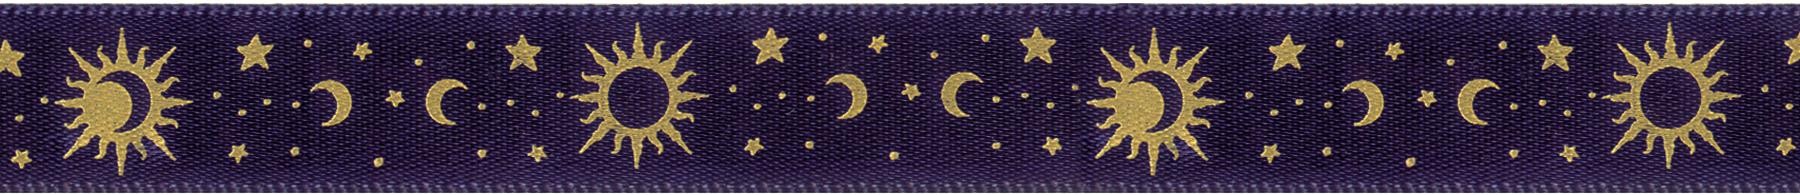 Double Face Satin Celestial Ribbon Navy and Gold 5/8inX12ft